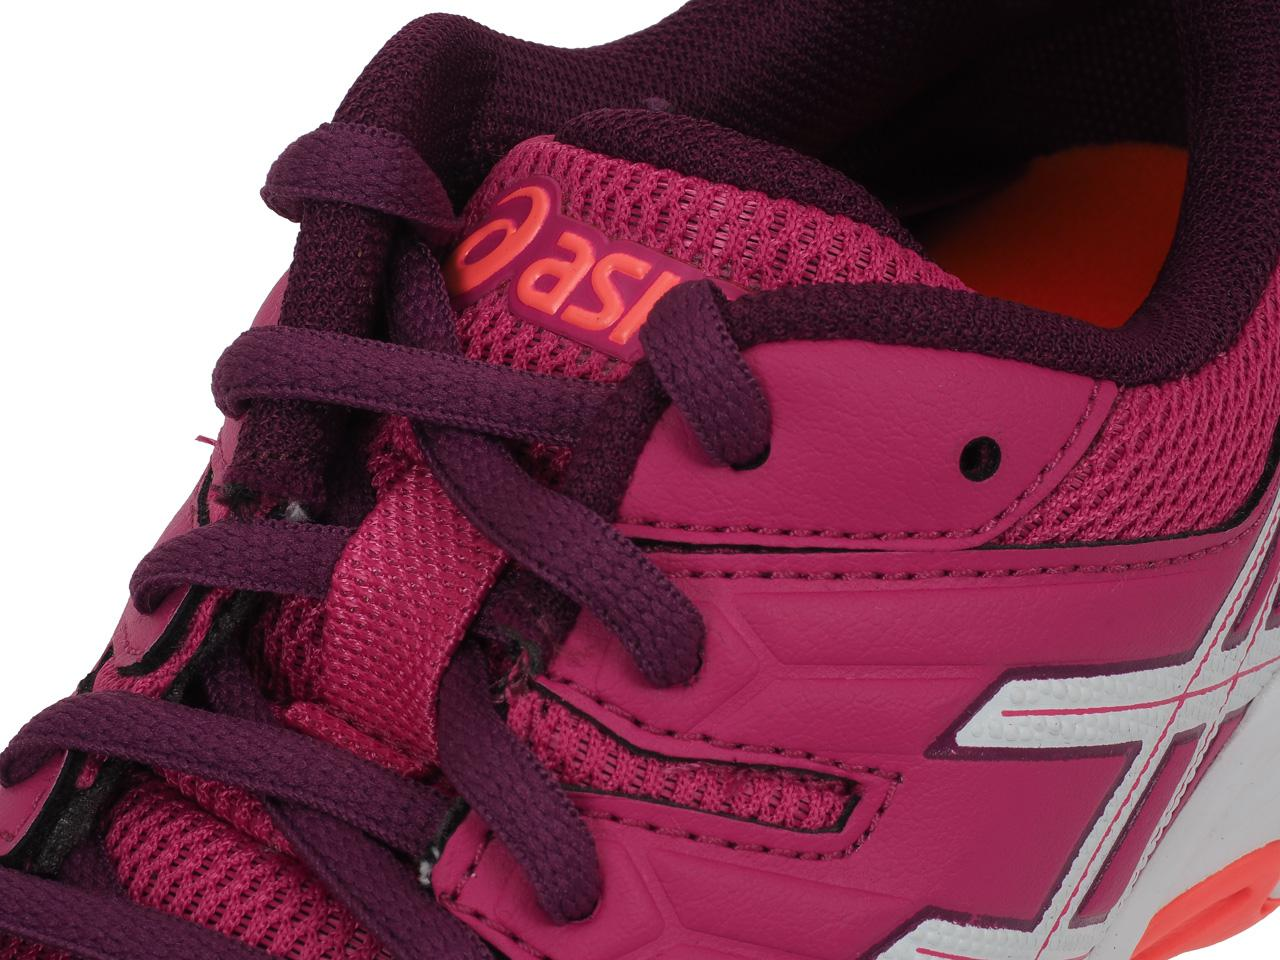 Chaussures-tennis-Asics-Game-5-gel-rse-tennis-g-Rose-57090-Neuf